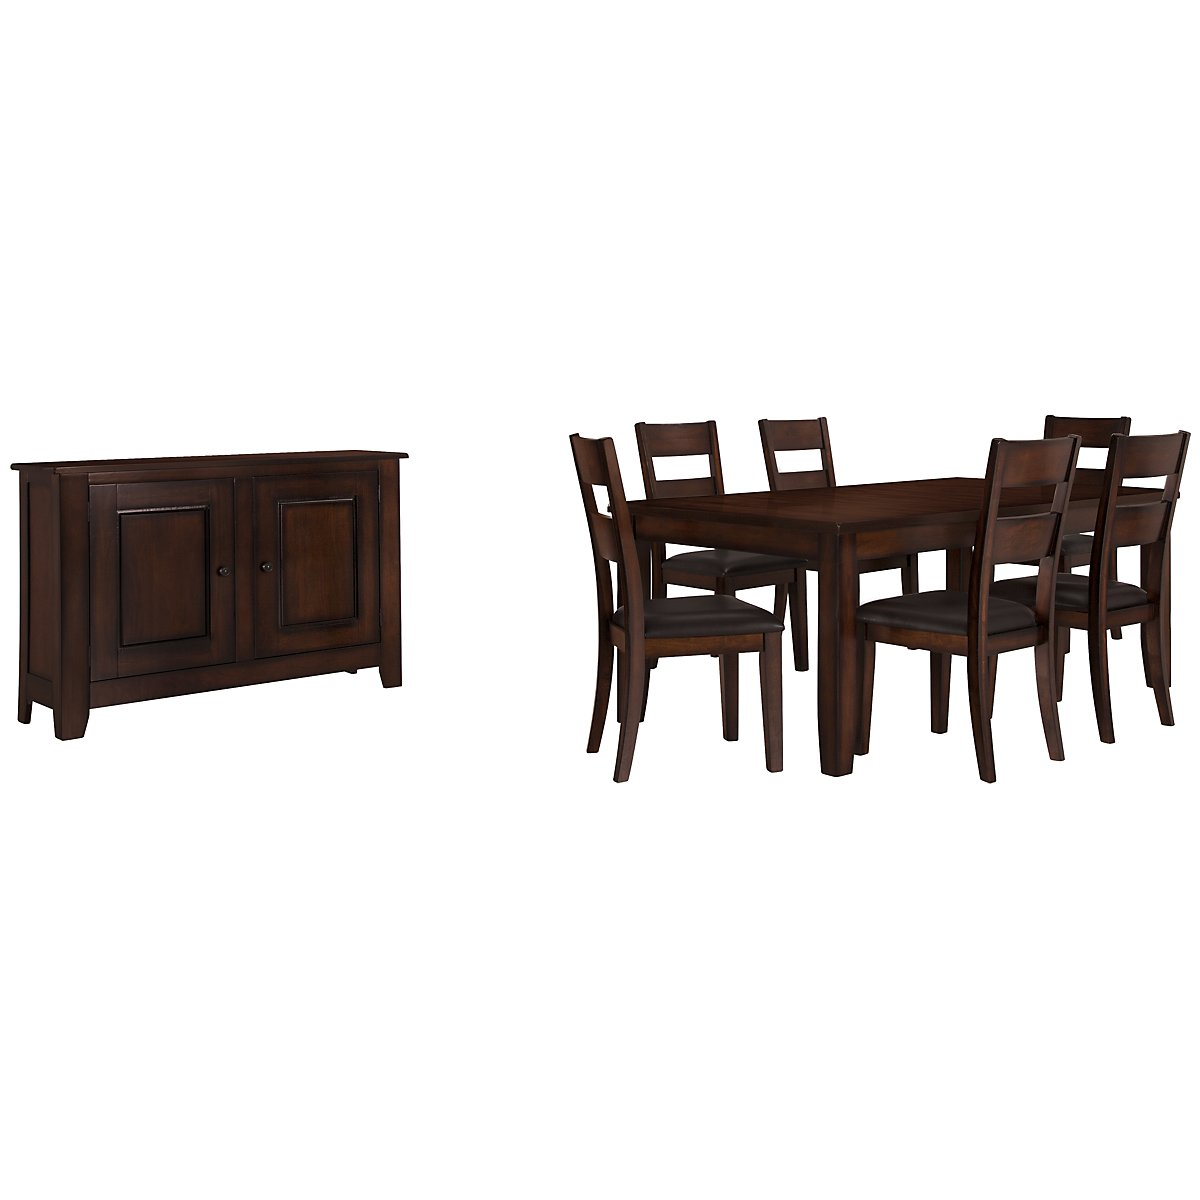 Mango2 Dark Tone Rectangular Dining Room